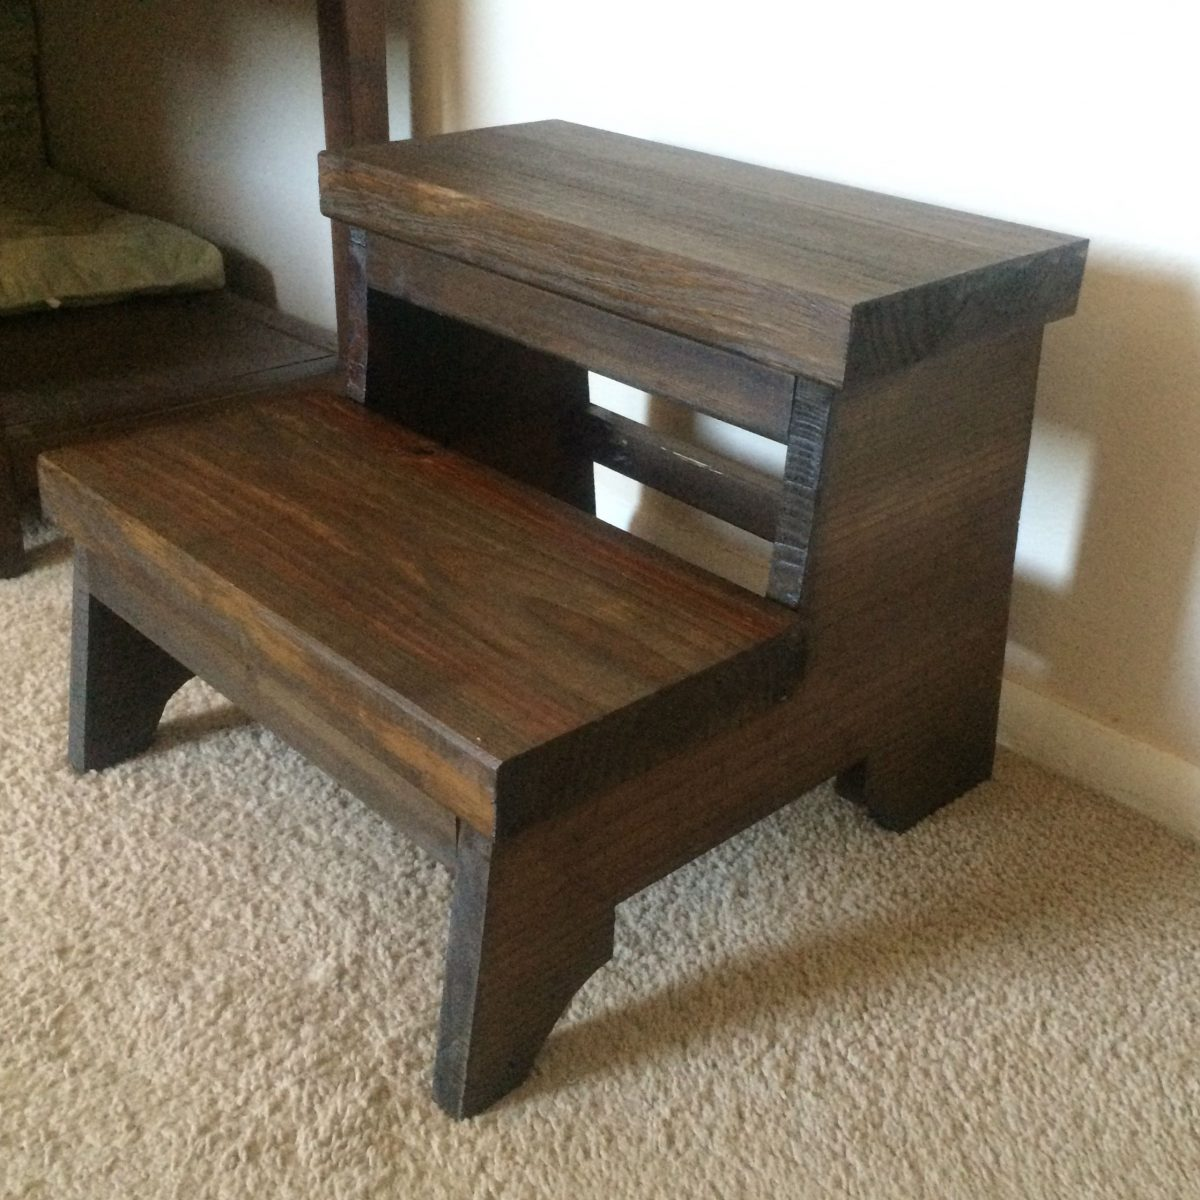 Wood Step Stool